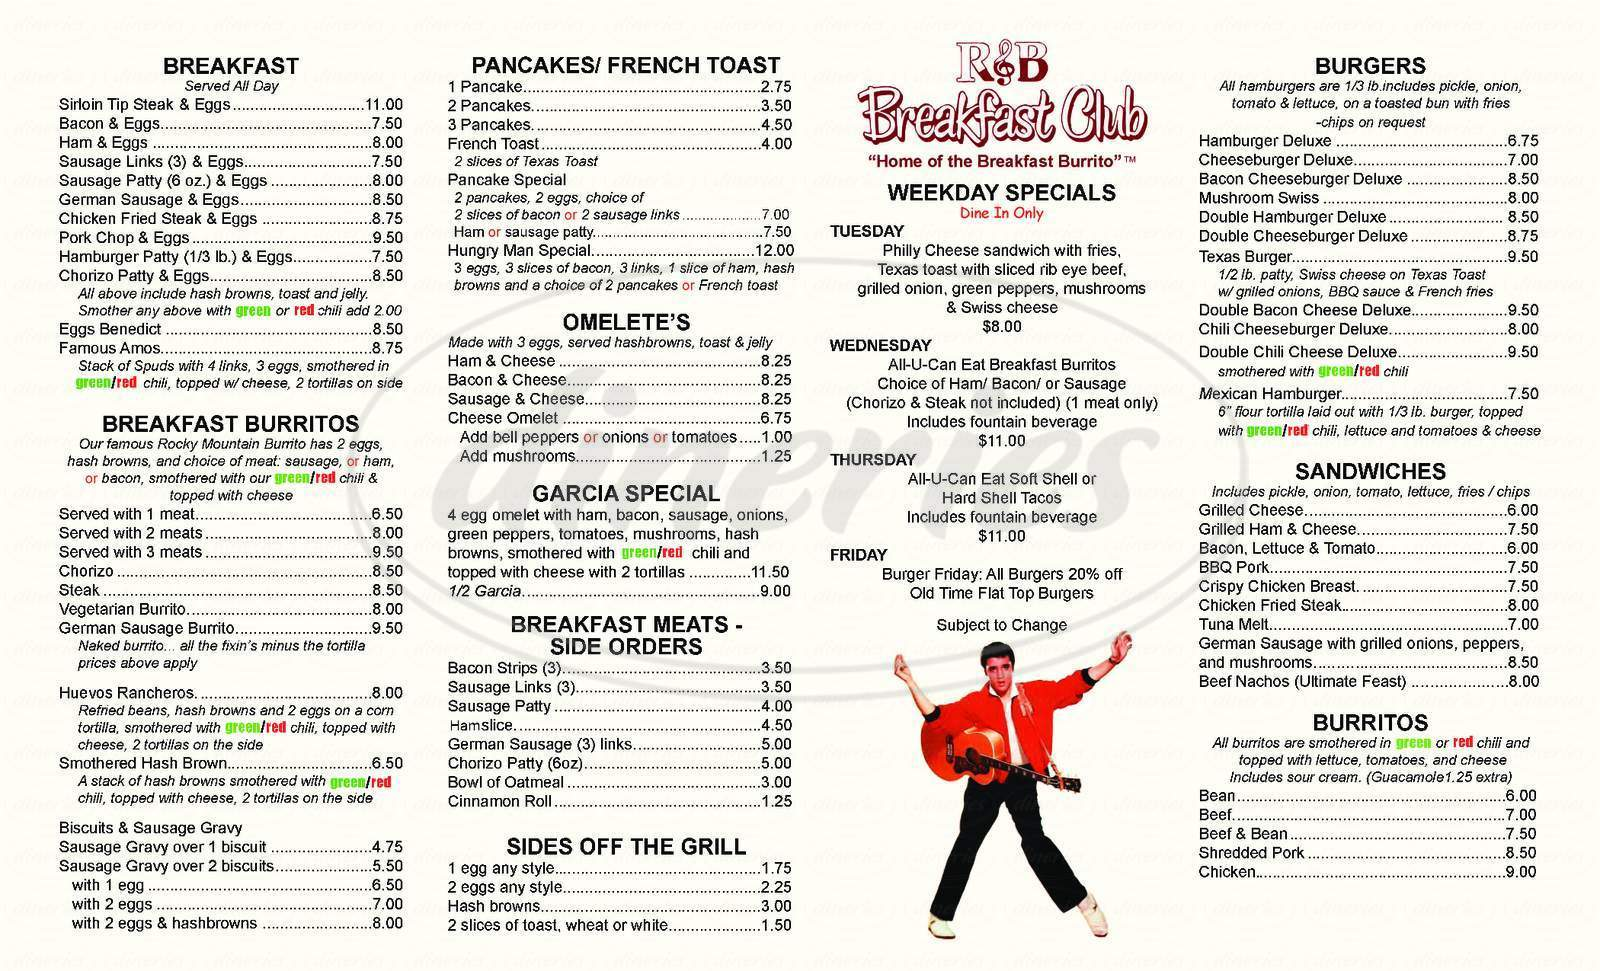 menu for R & B Breakfast Club